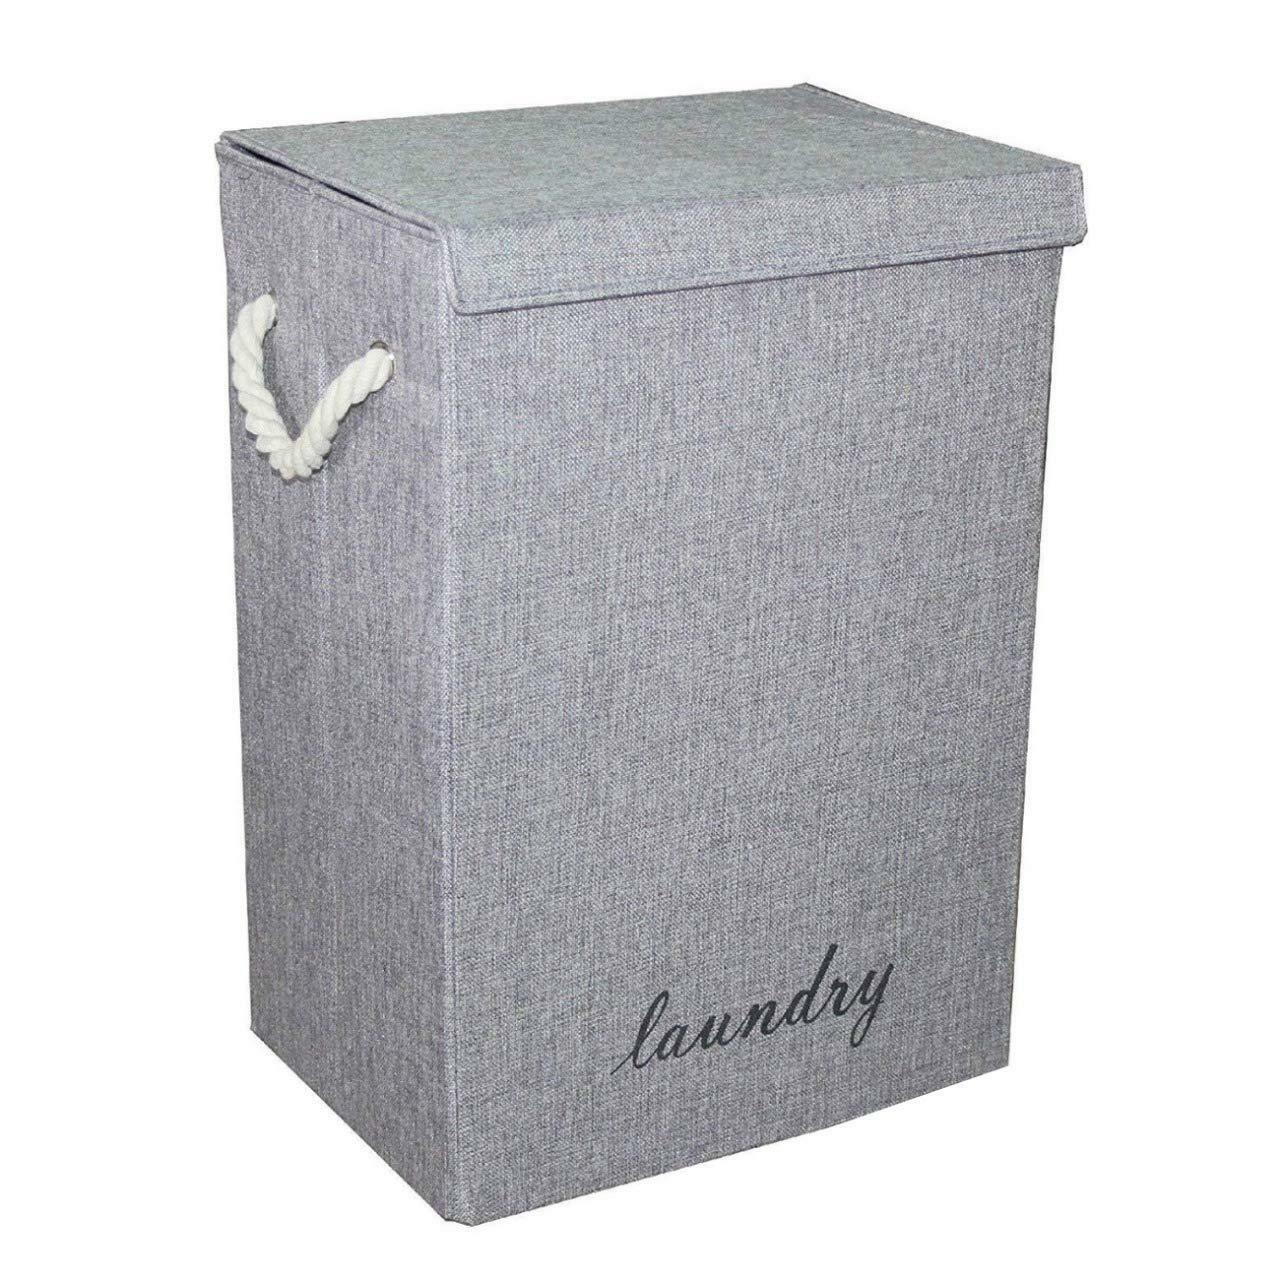 New Grey Hamper Fabric Laundry Basket With Lid Ideal for Kids Toys Storage